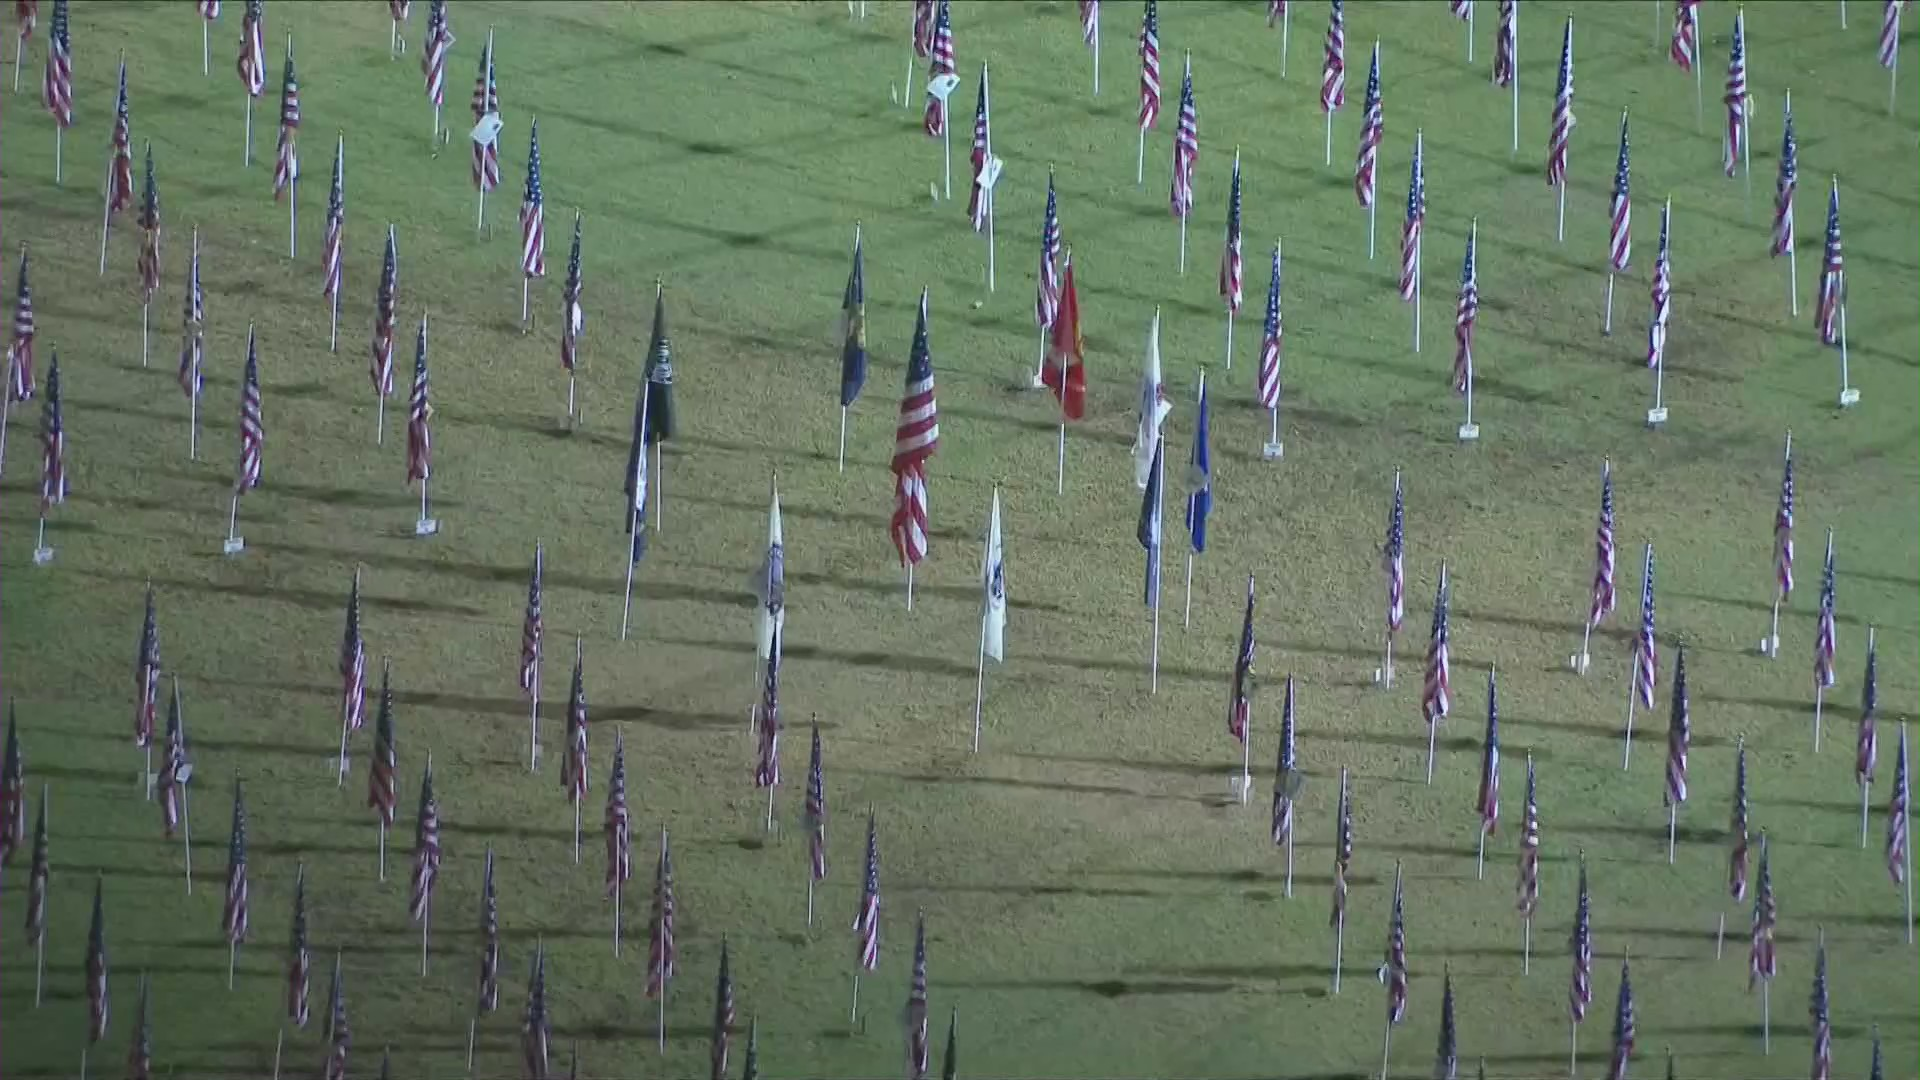 Flags are seen on Veterans Day, Nov. 11, 2020, at a park in Orange County. (KTLA)